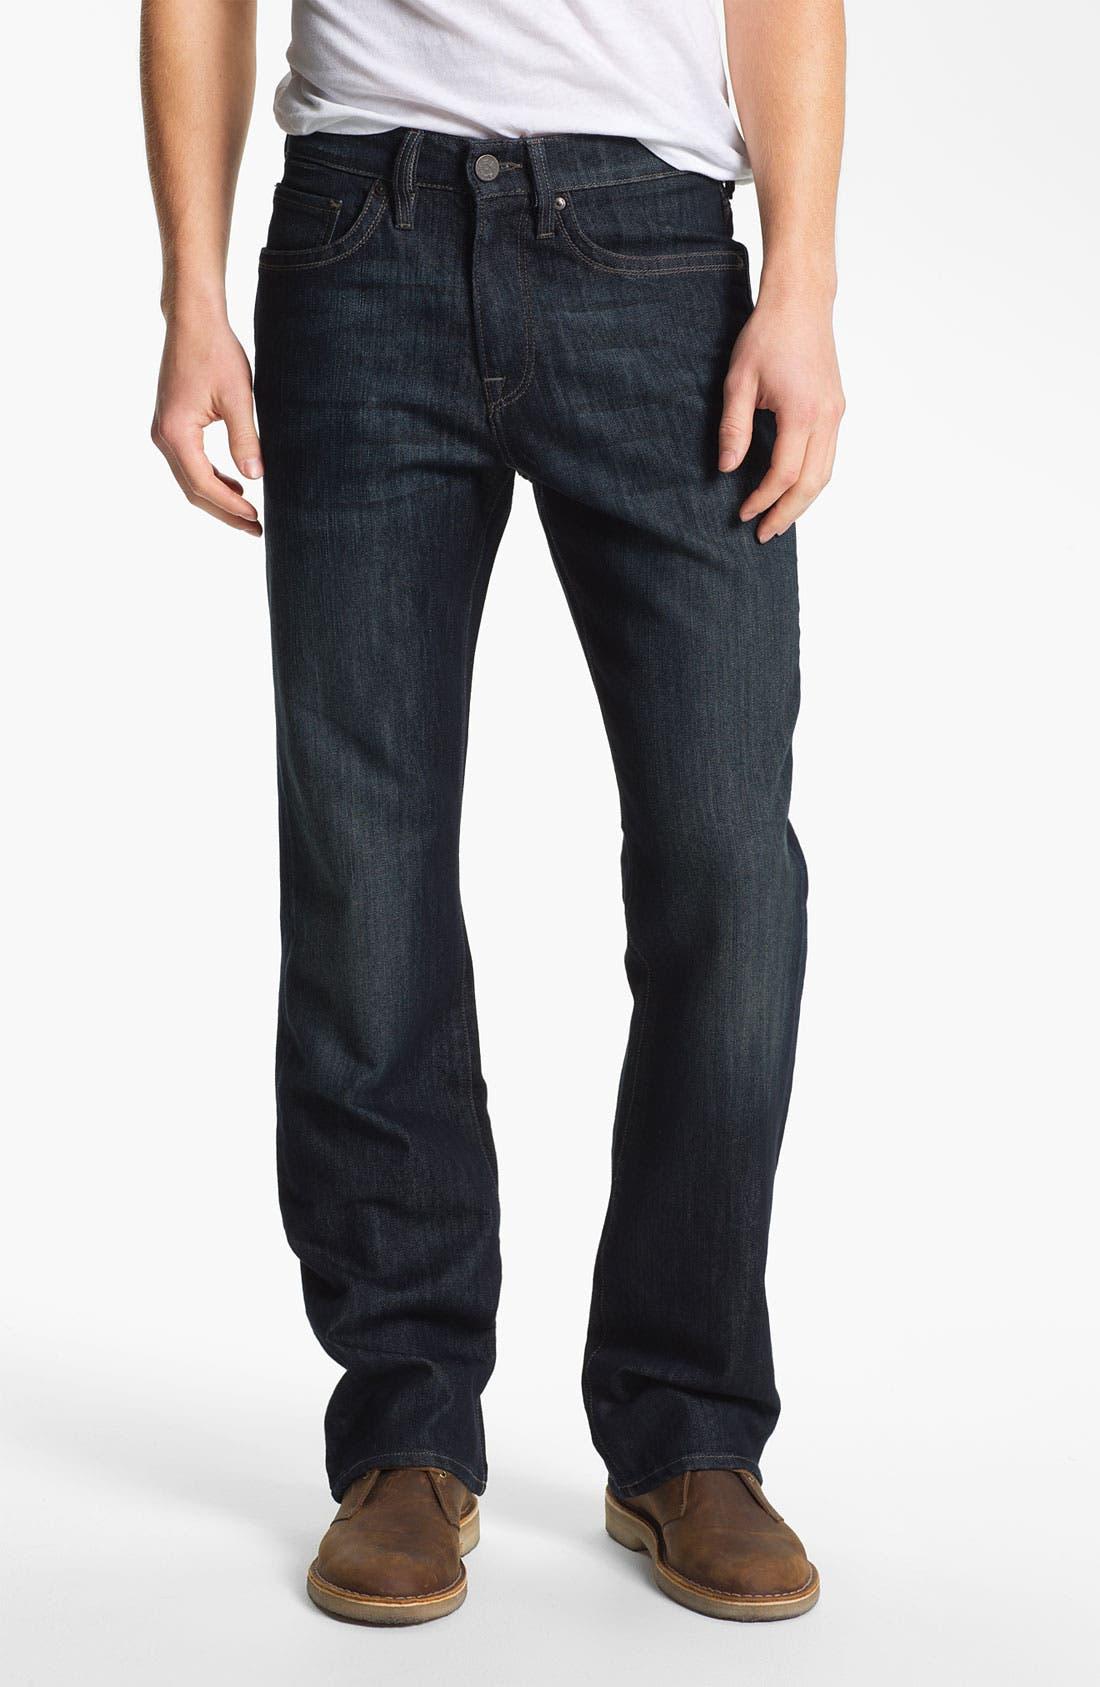 Alternate Image 1 Selected - 34 Heritage 'Charisma' Straight Leg Jeans (Deep) (Online Only)